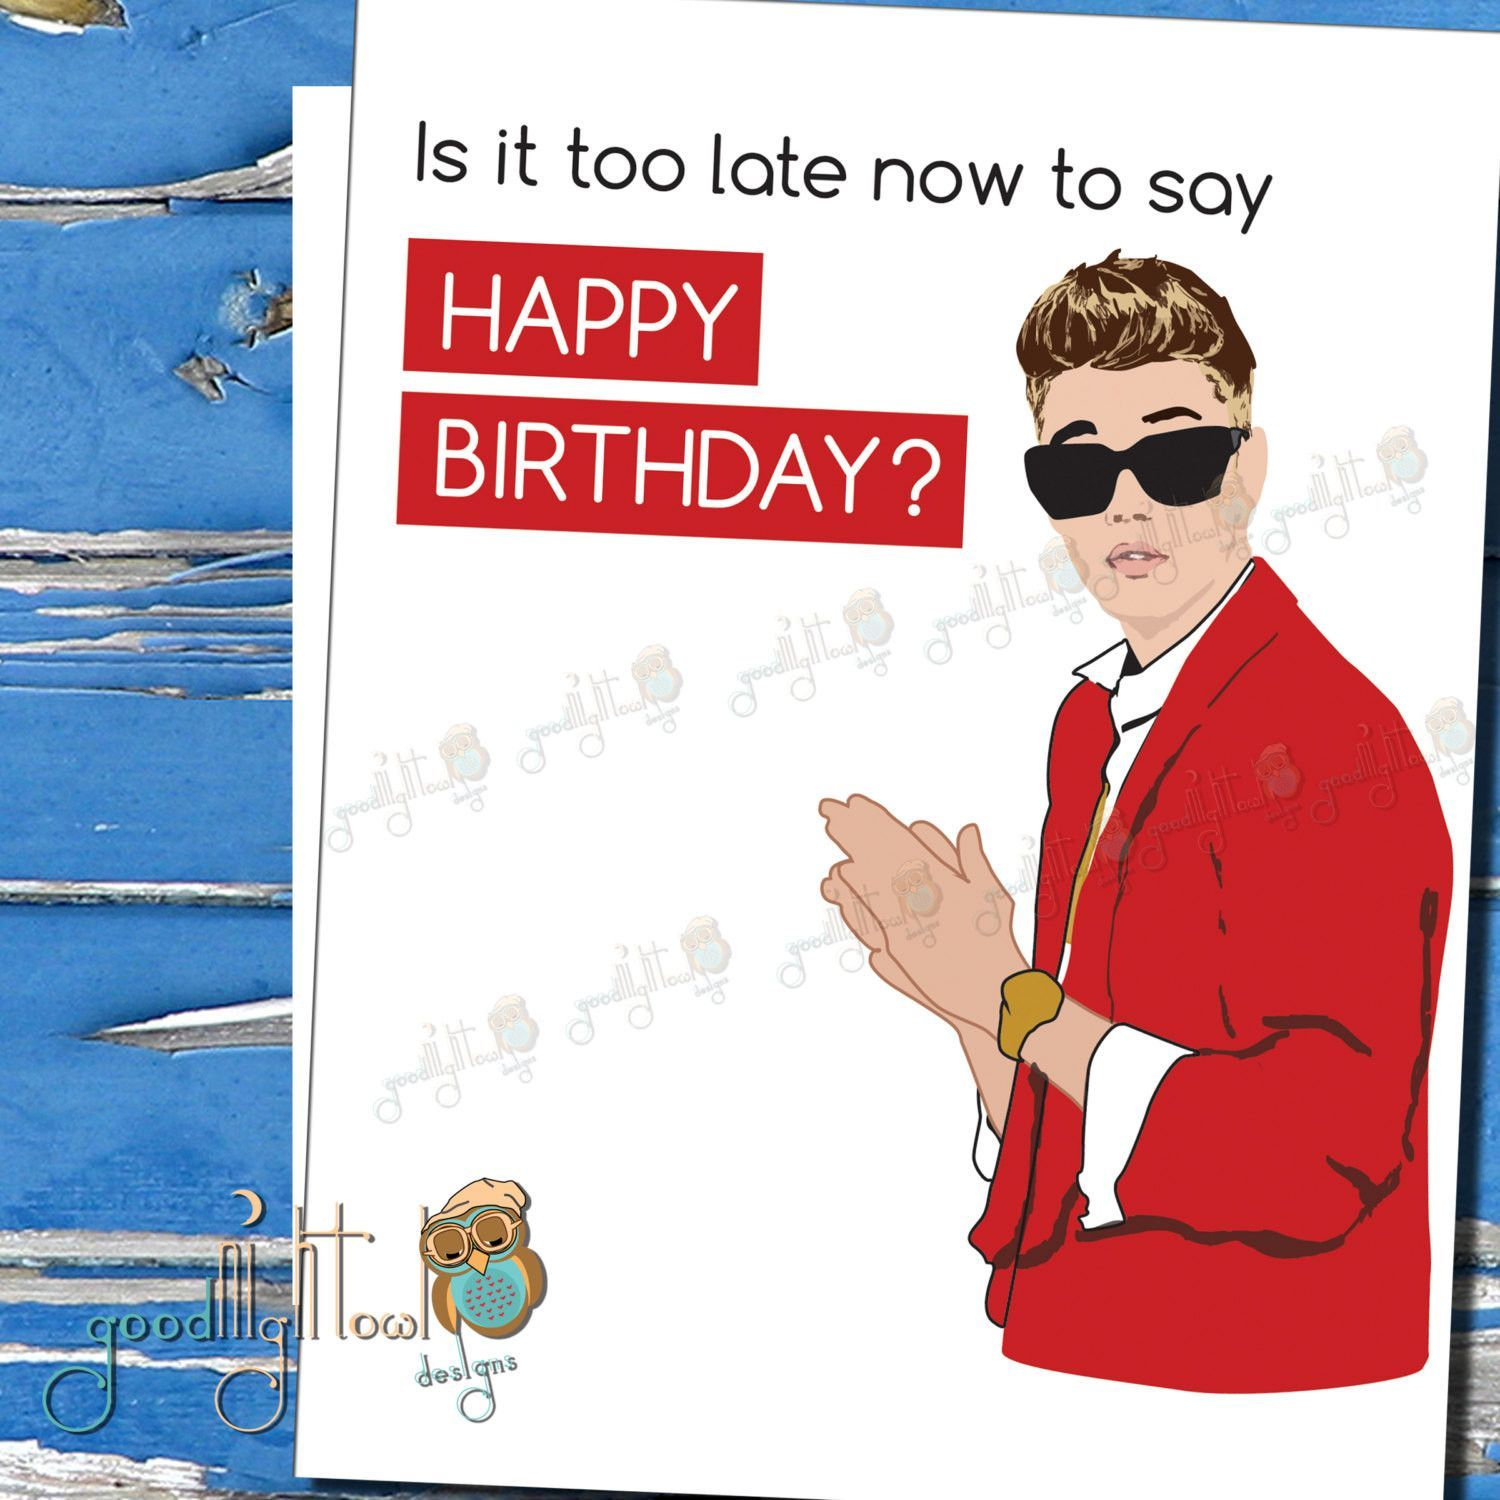 Funny Belated Birthday Card Justin Bieber Is It Too Late Now To Say Happy Boyfriend Girlfriend